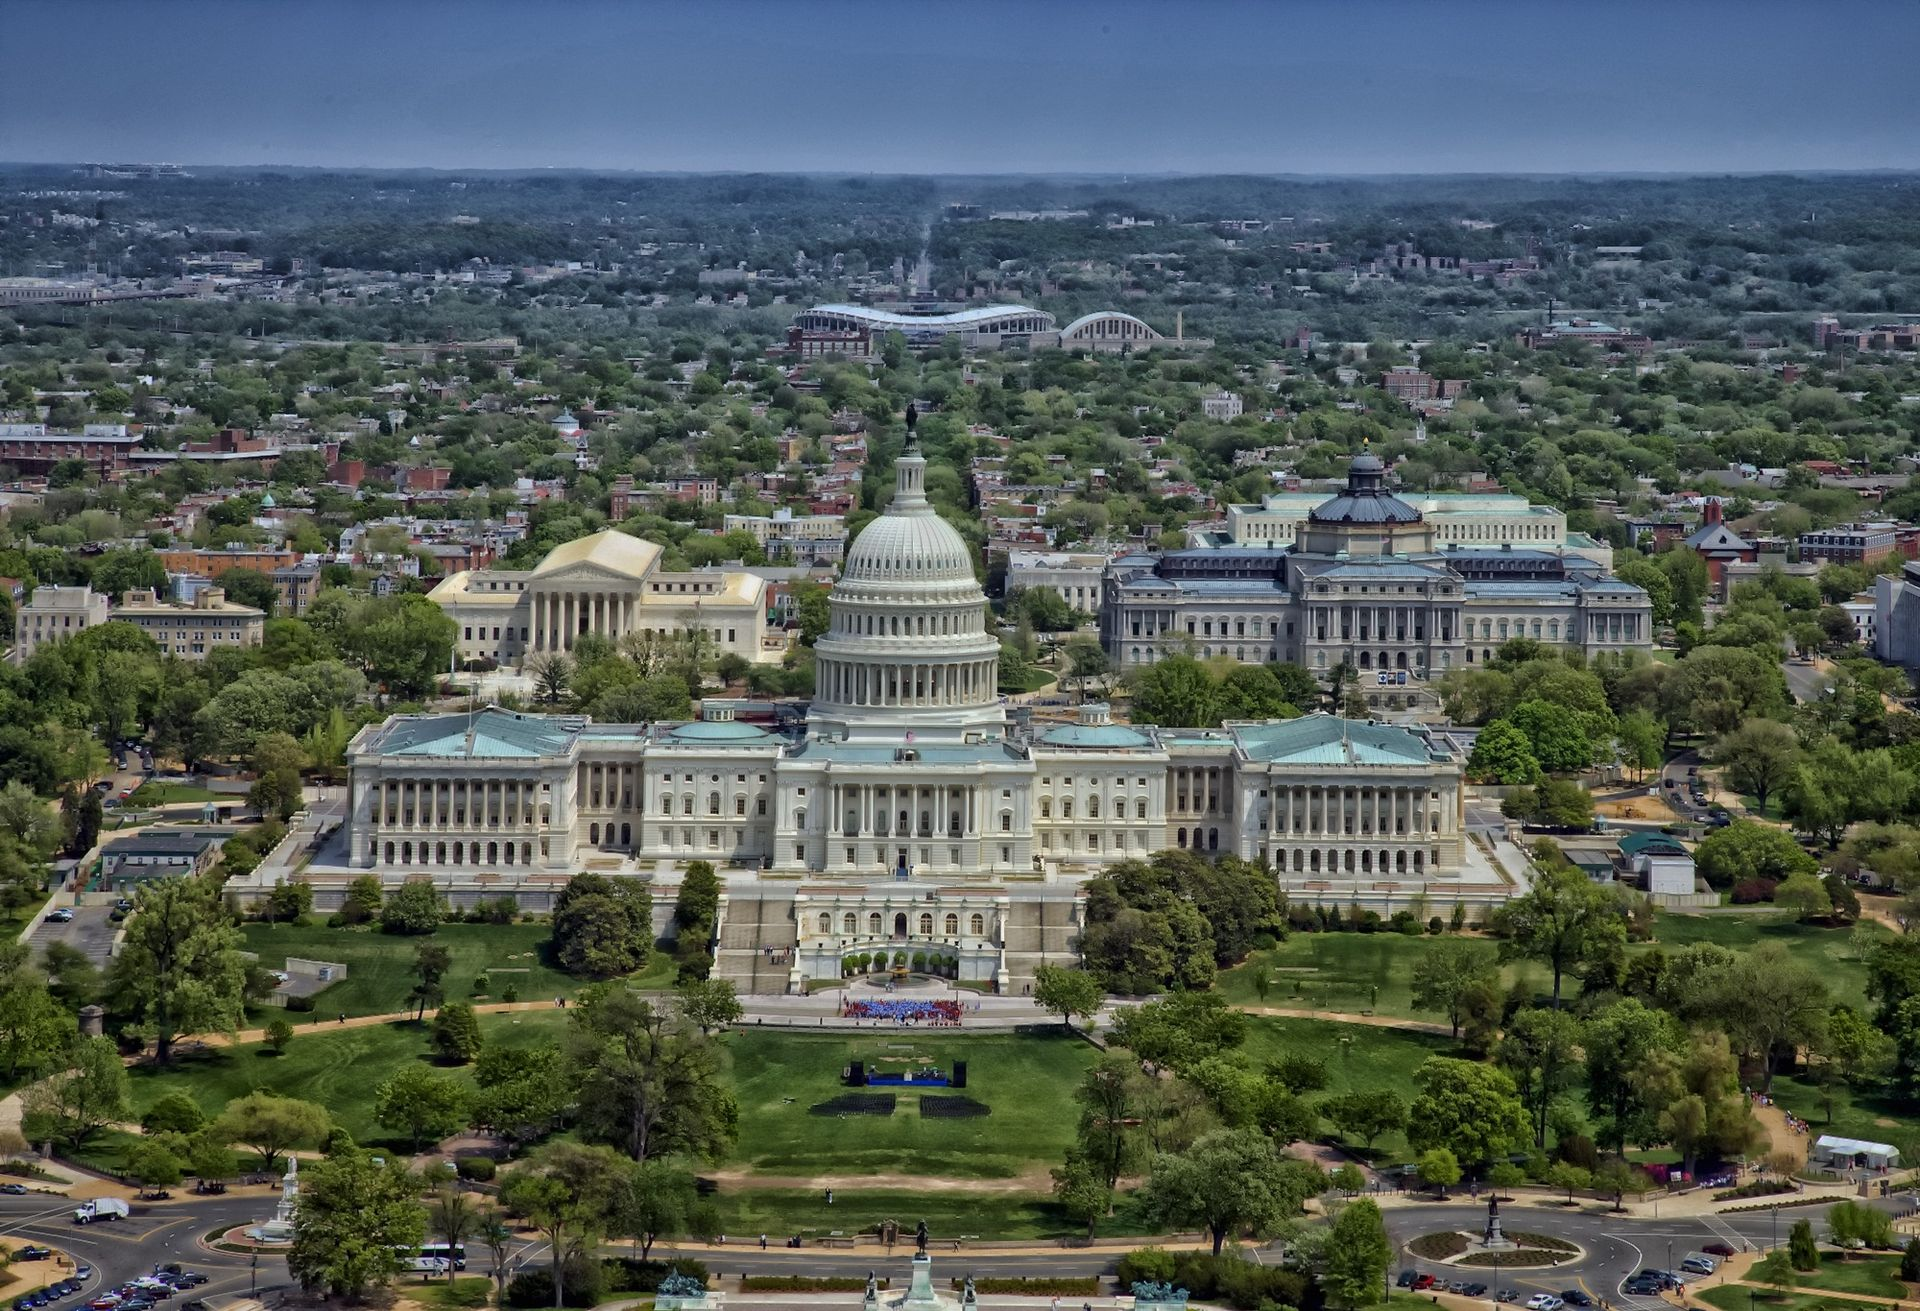 Now that the bills for the new museums has been approved organisers say that each institution could potentially be built on or near the National Mall in Washington, DC